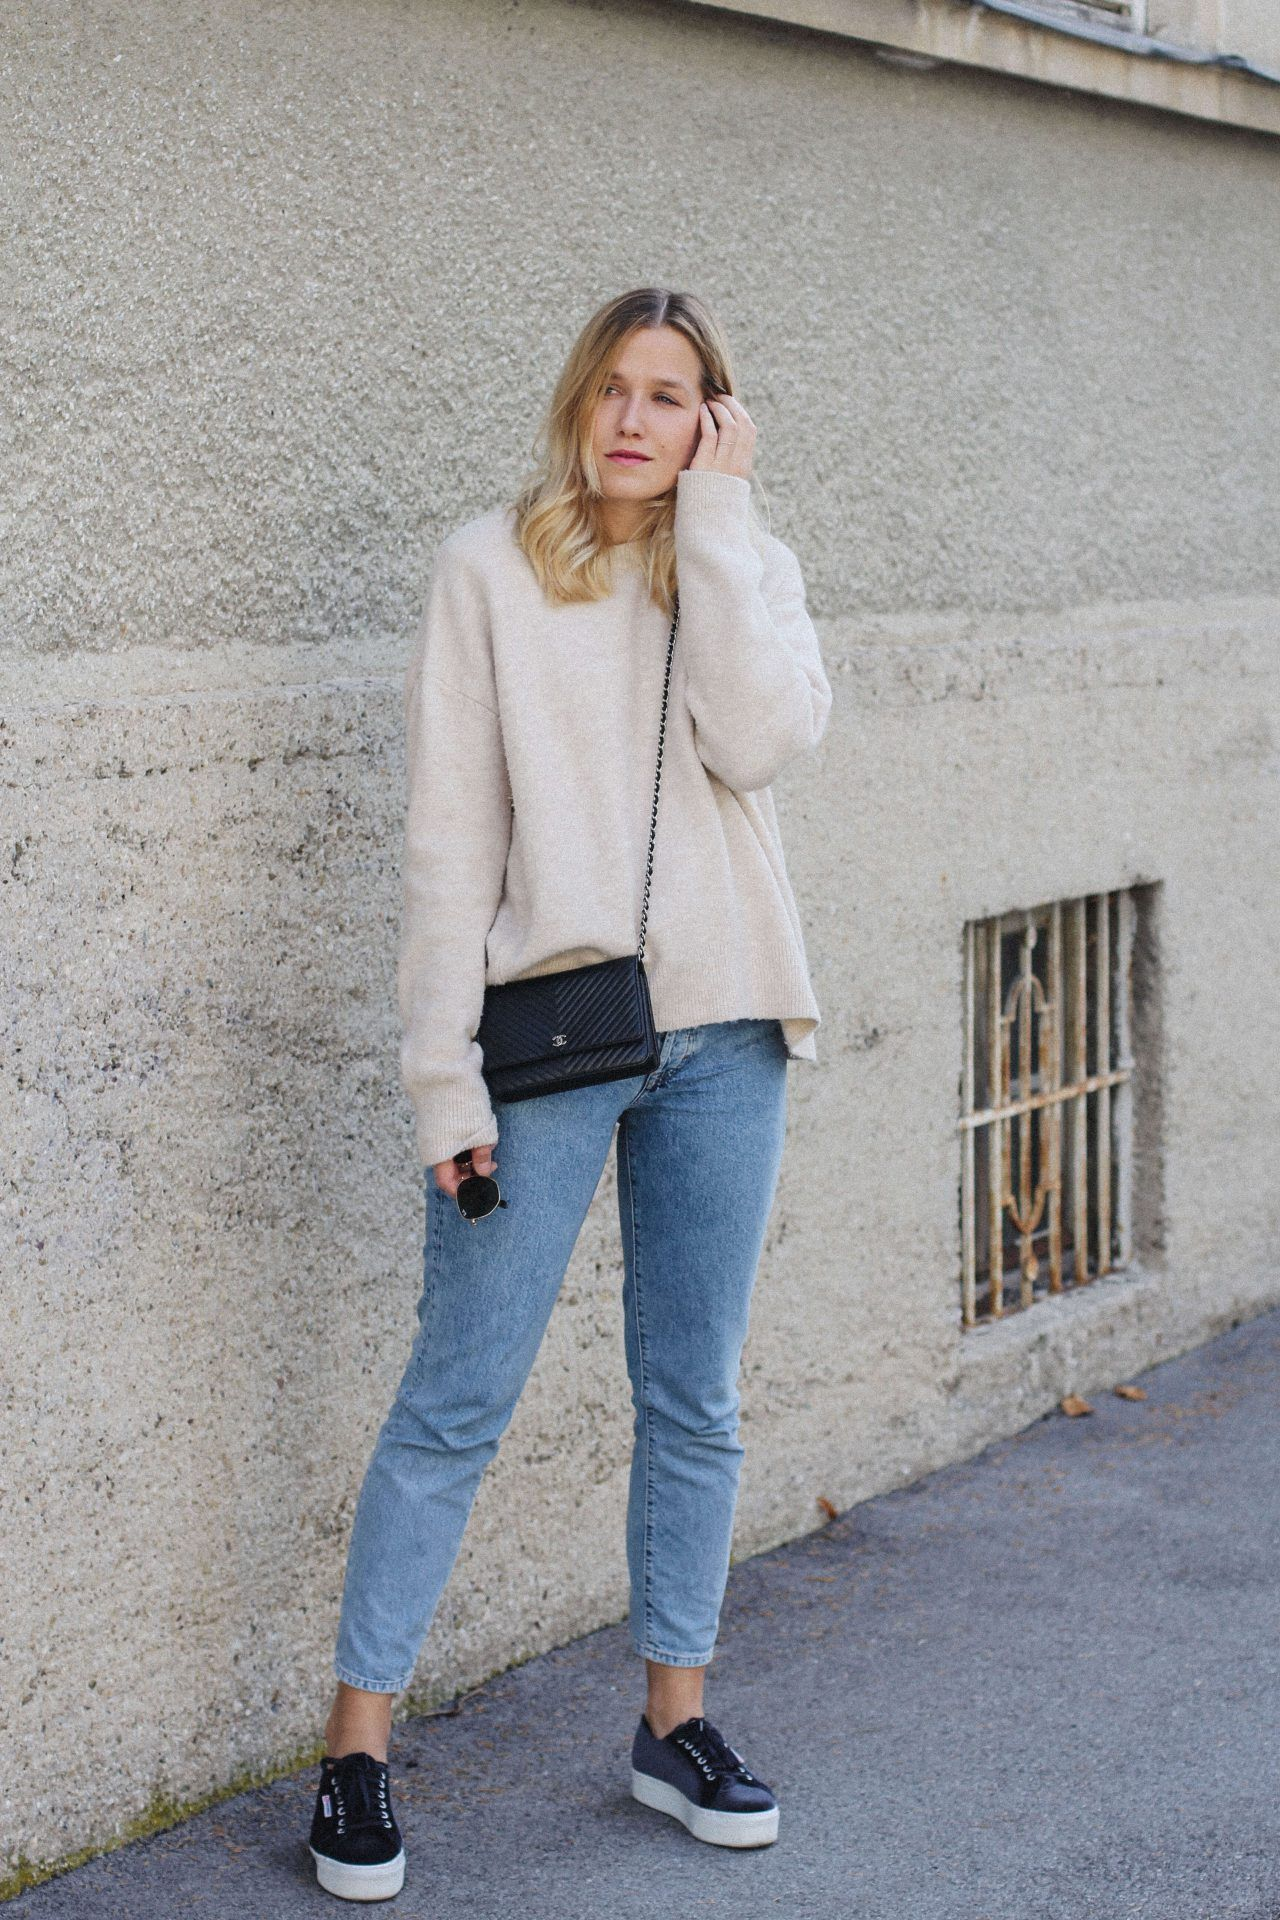 modern style terrific value matching in colour tifmys – Sweater: Zara | Jeans: H&M | Sneakers: Superga ...